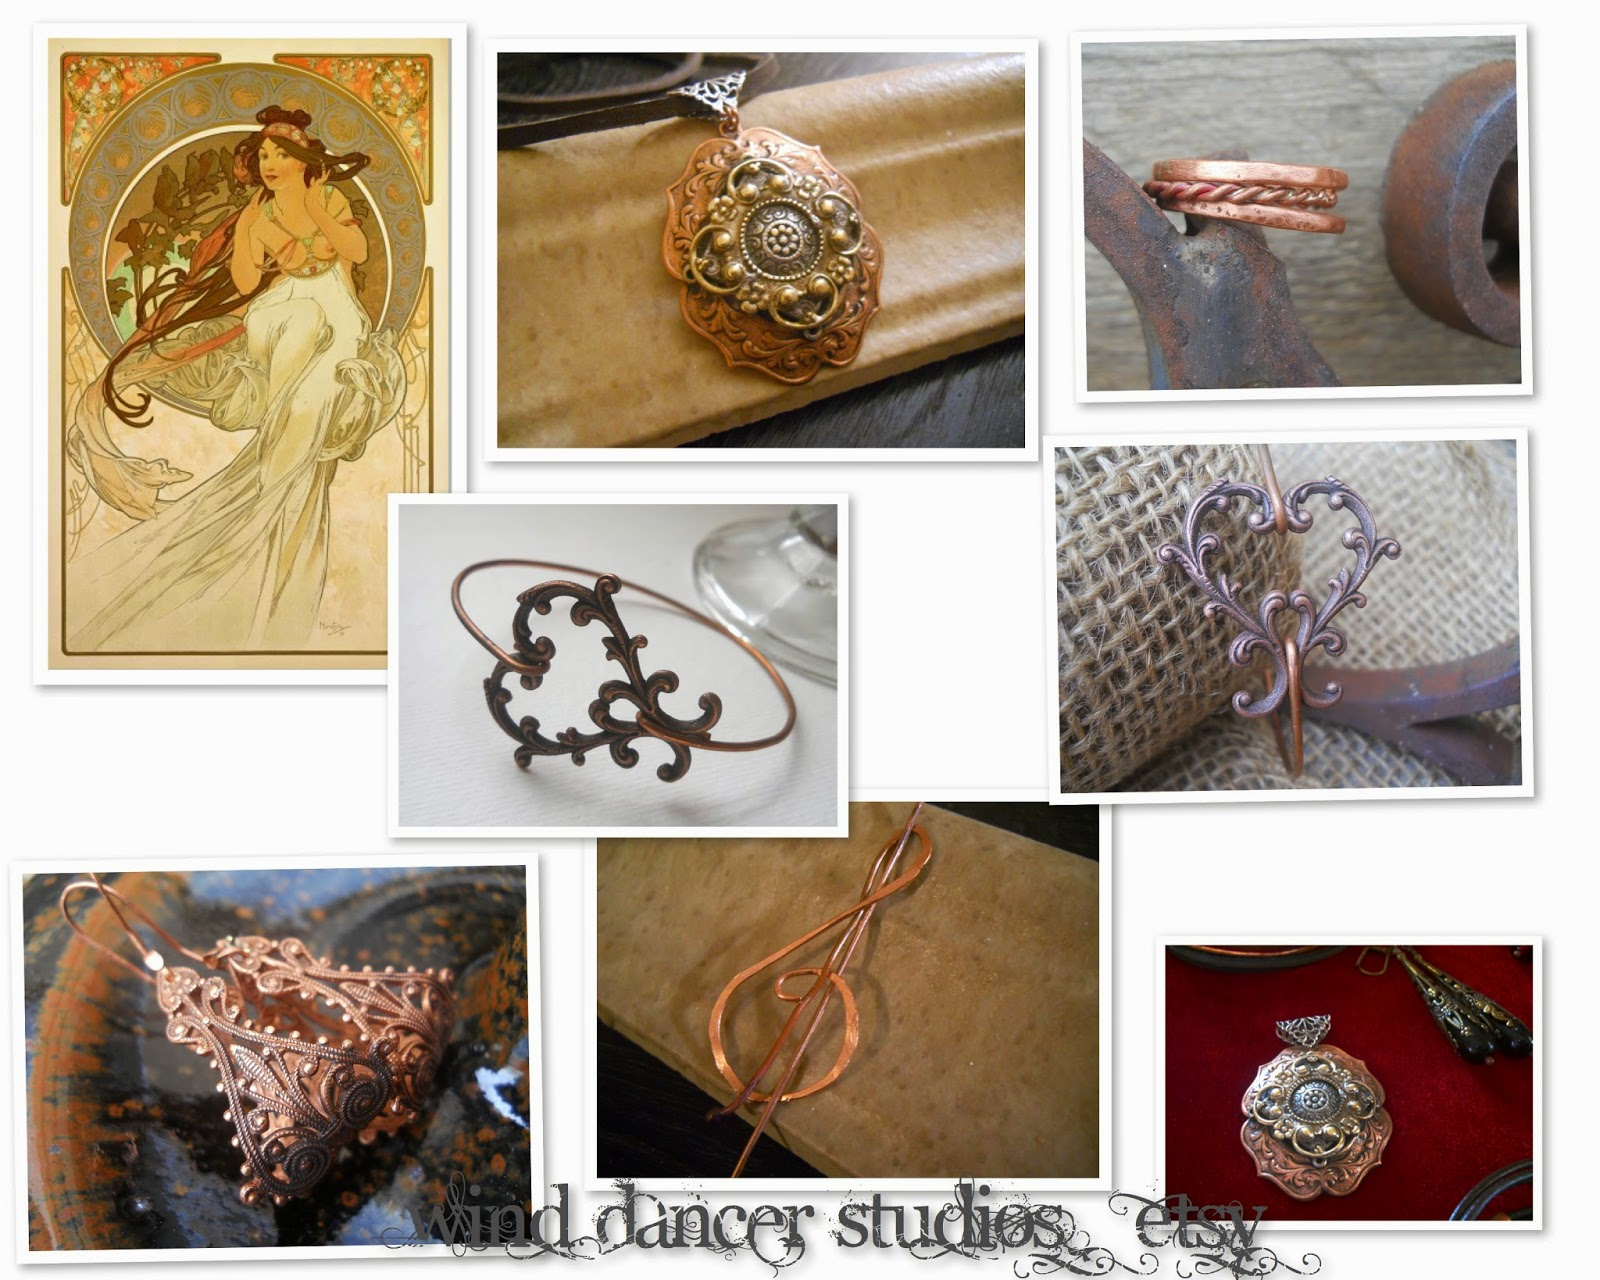 mucha's musings: the Arts Collection: Music, hand crafted jewelry by Wind Dancer Studios on Etsy